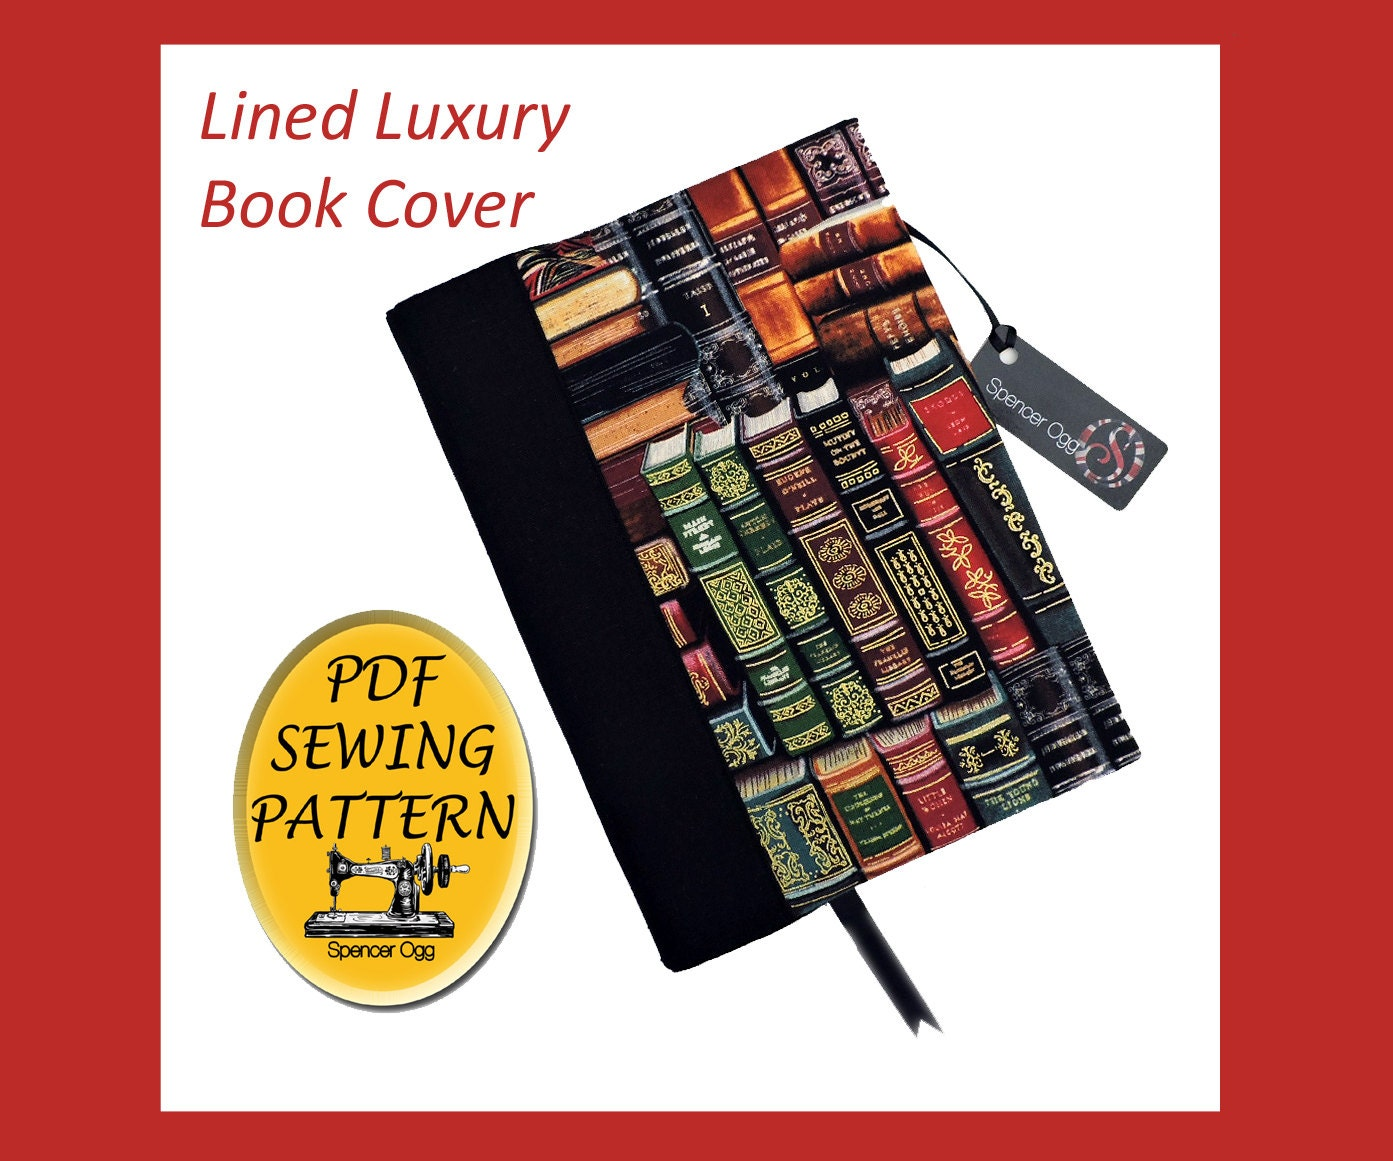 Book Cover Sewing Pattern ~ Luxury a book cover sewing pattern with free by